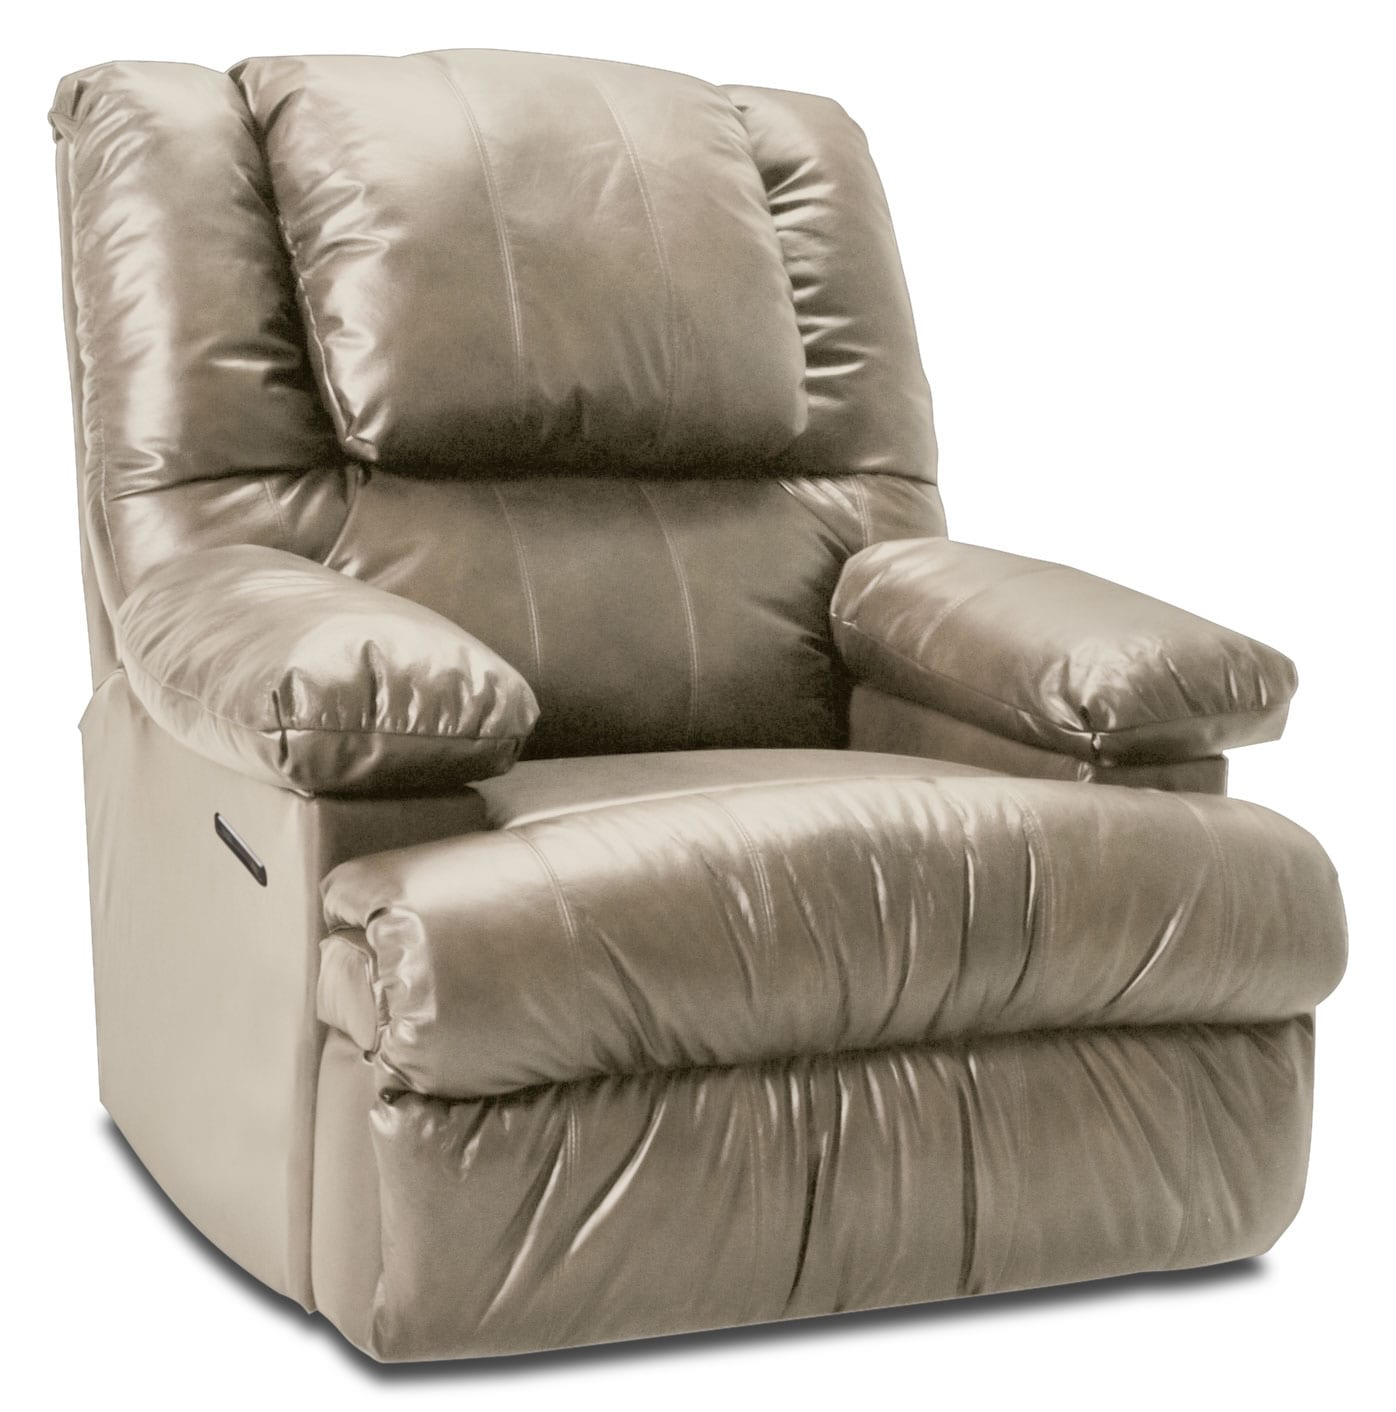 Designed2b 5598 Bonded Leather Power Recliner With Massage And Storage Putty The Brick